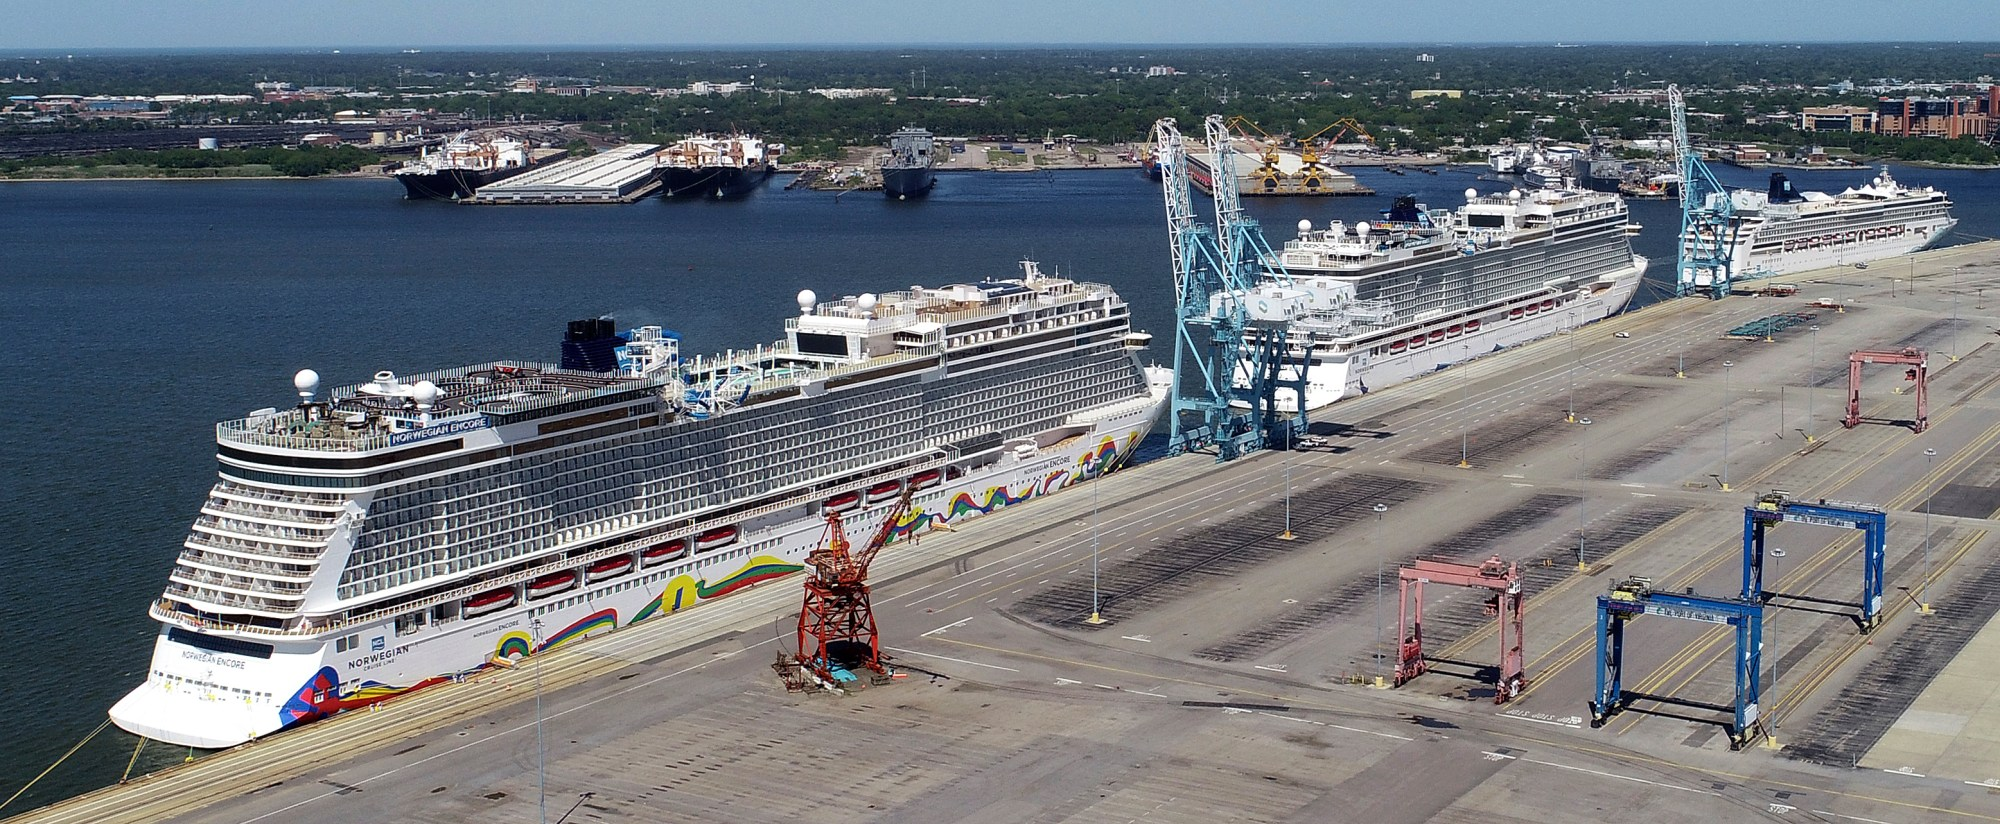 In this May 4, 2020 file photo, Norwegian cruise ships are docked at Portsmouth Marine Terminal in Portsmouth, Va. Norwegian Cruise Lines is threatening to skip Florida ports because of the governor's order banning businesses from requiring that customers be vaccinated against COVID-19. The company says Gov. Ron DeSantis' order conflicts with guidelines from federal health authorities that would let cruise ships sail in U.S. waters if passengers and crew members are vaccinated. (Stephen M. Katz/The Virginian-Pilot via AP, File)